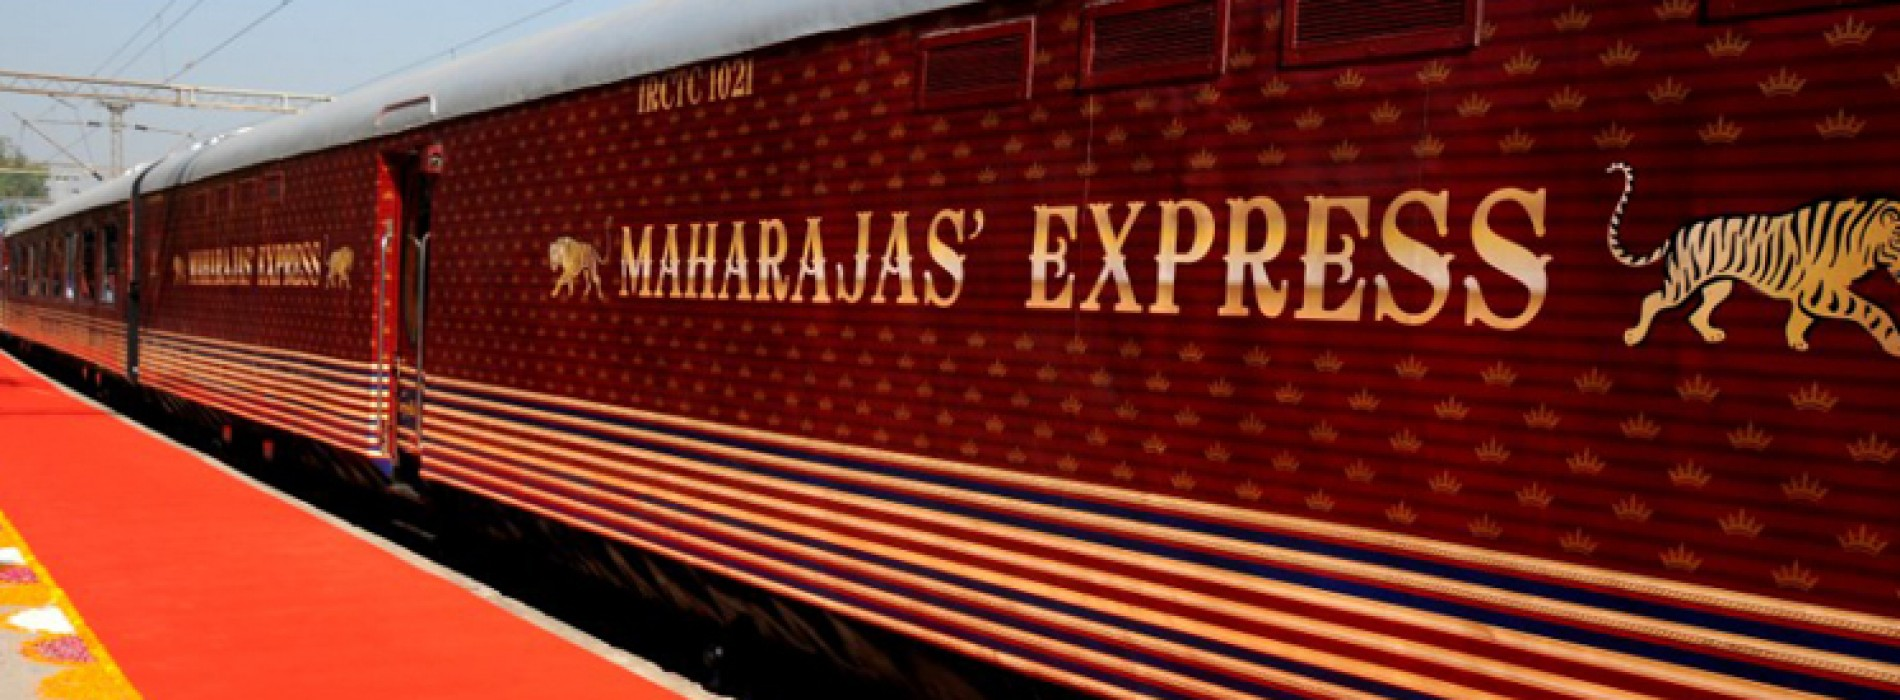 Maharajas' Express flagged off for new tourist season